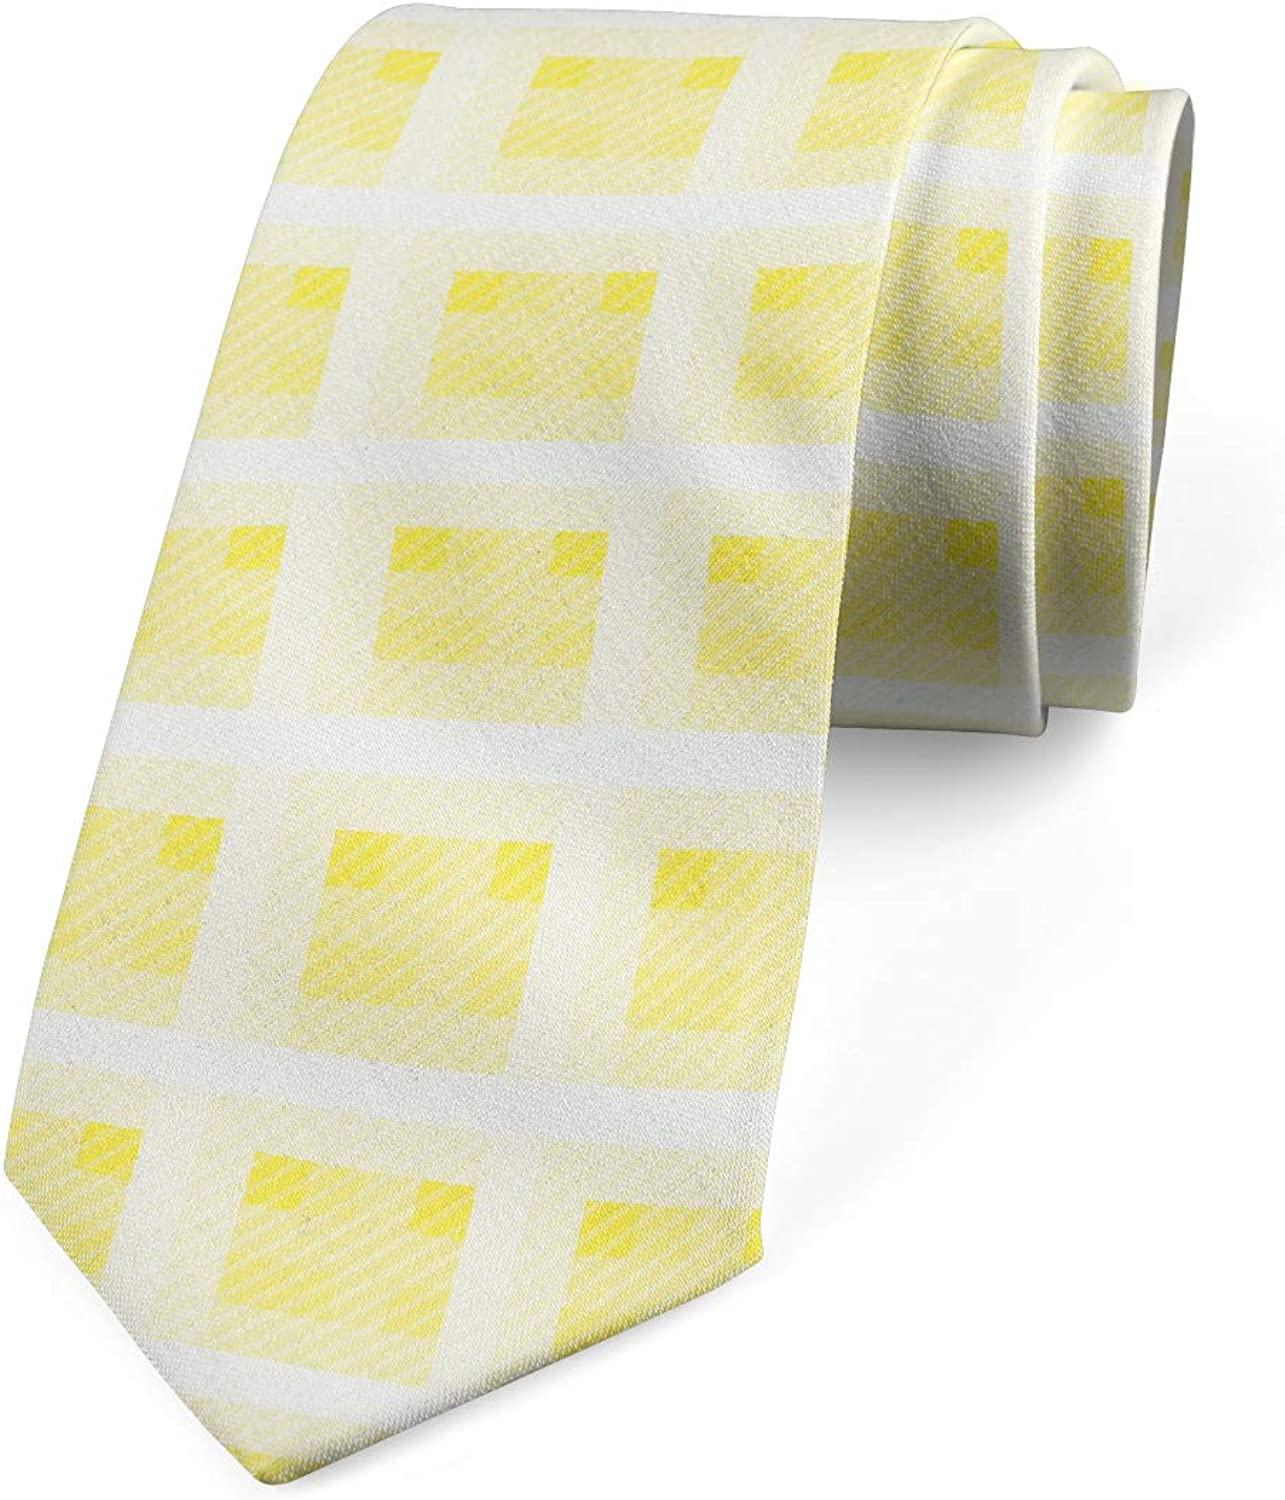 Ambesonne Abstract Necktie, Squares in Pastel Tones Simple Look Rhythmic Motifs Illustration, 3.7